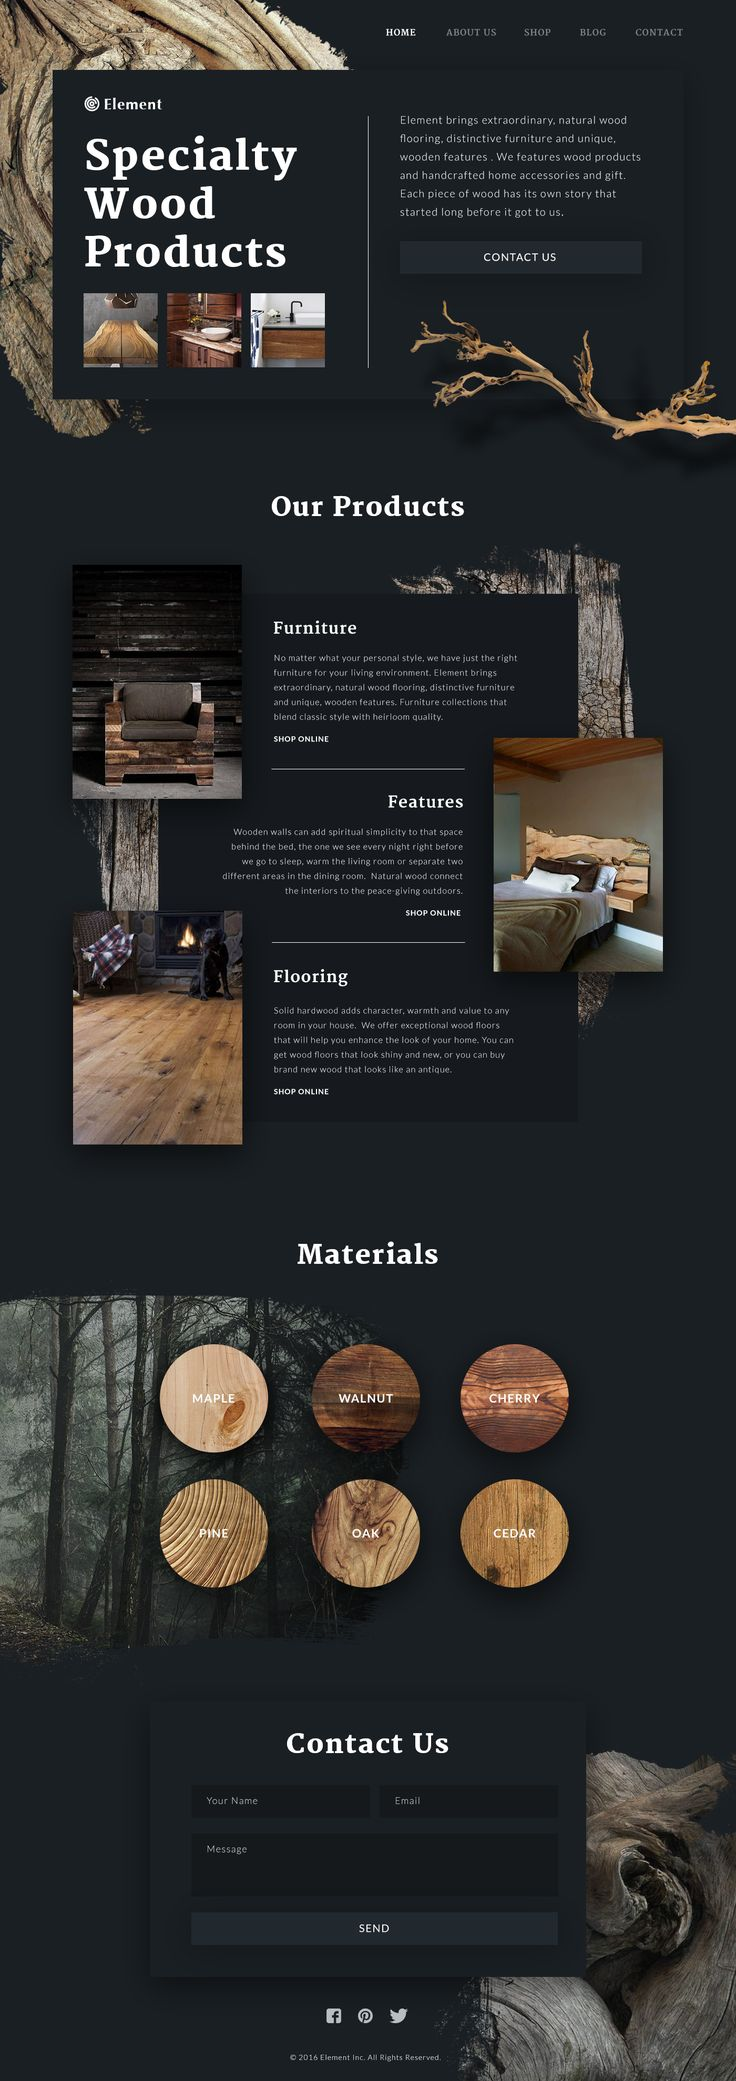 Wood Products Landing Page Ui Design Concept By Tubik Studio